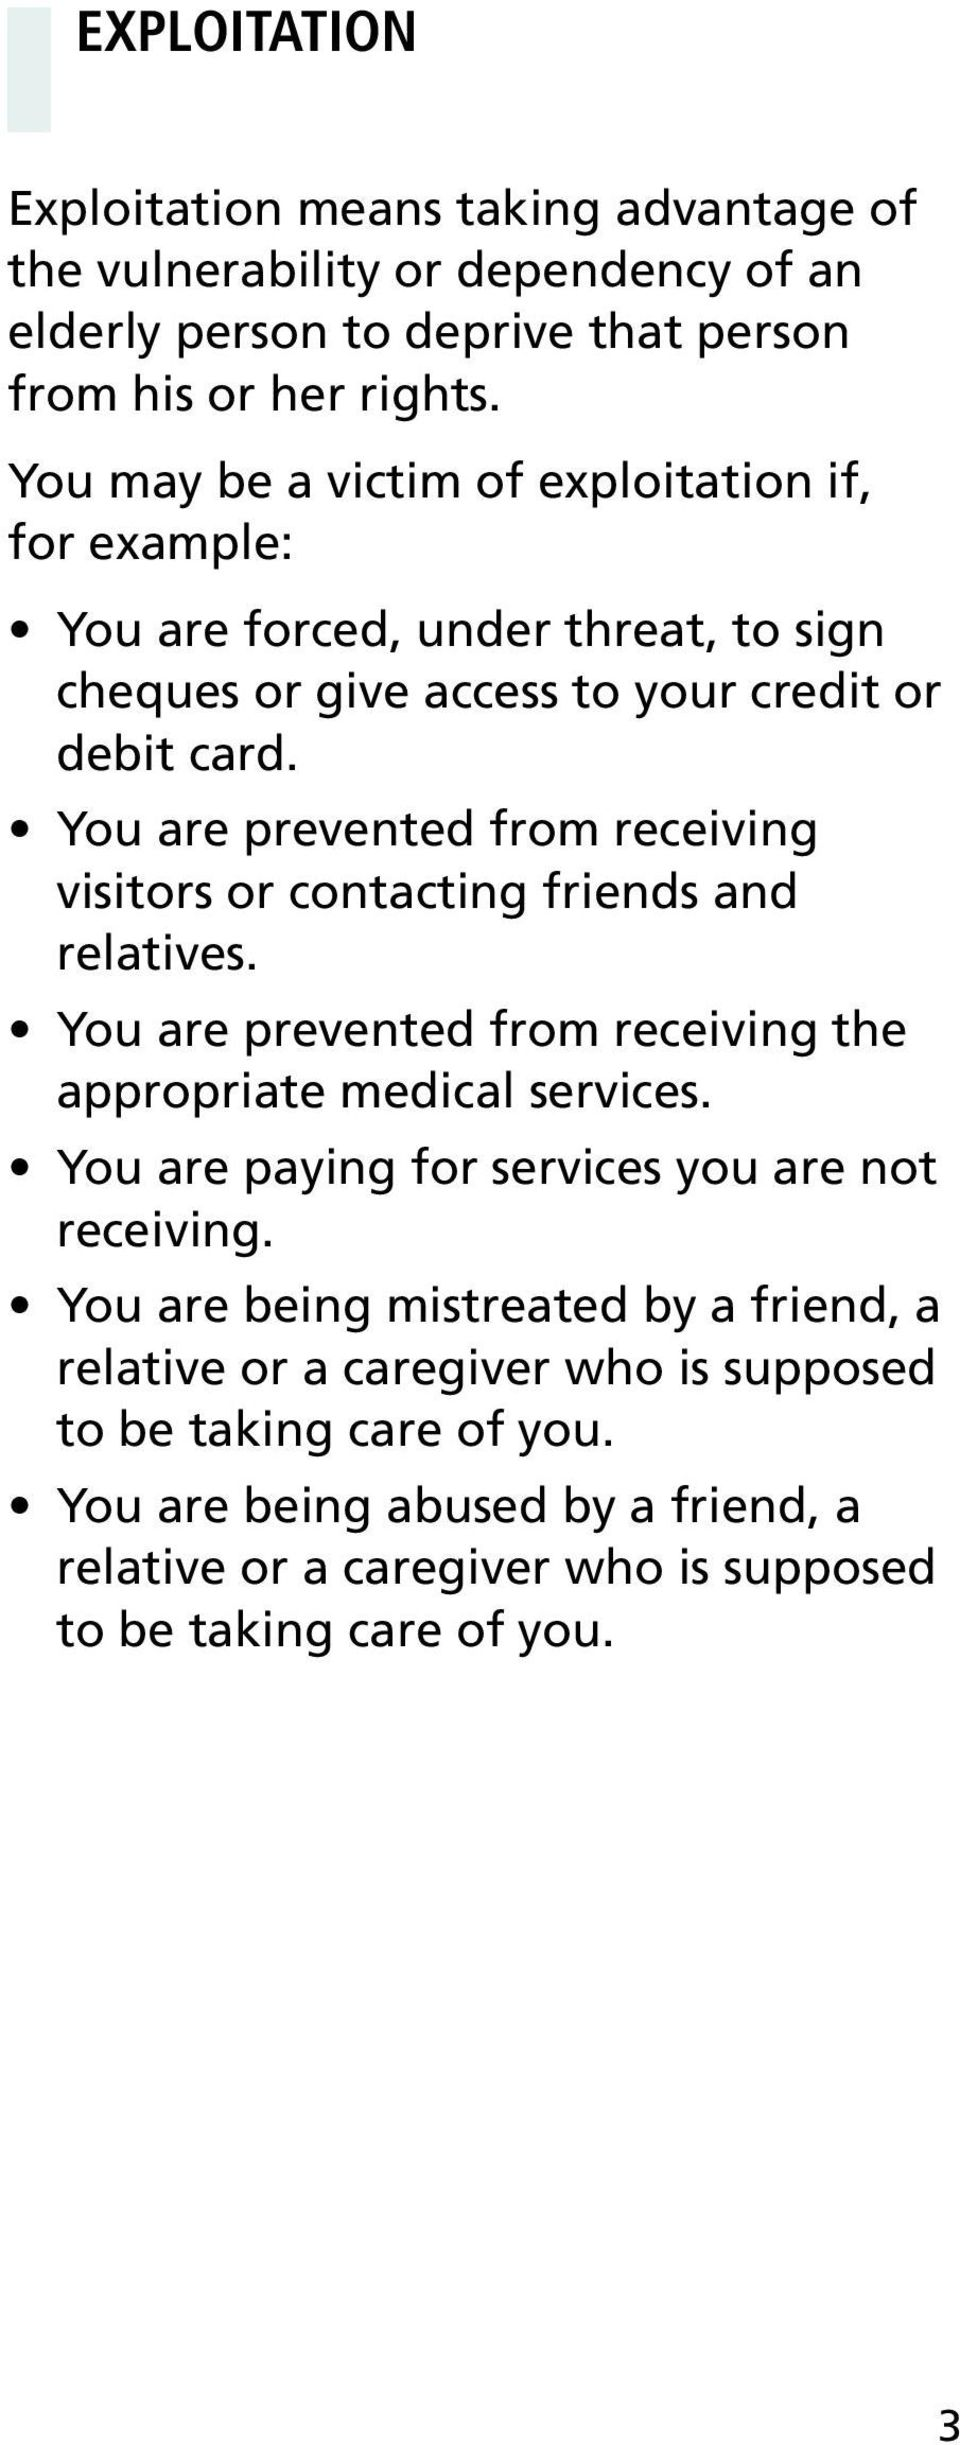 You are prevented from receiving visitors or contacting friends and relatives. You are prevented from receiving the appropriate medical services.